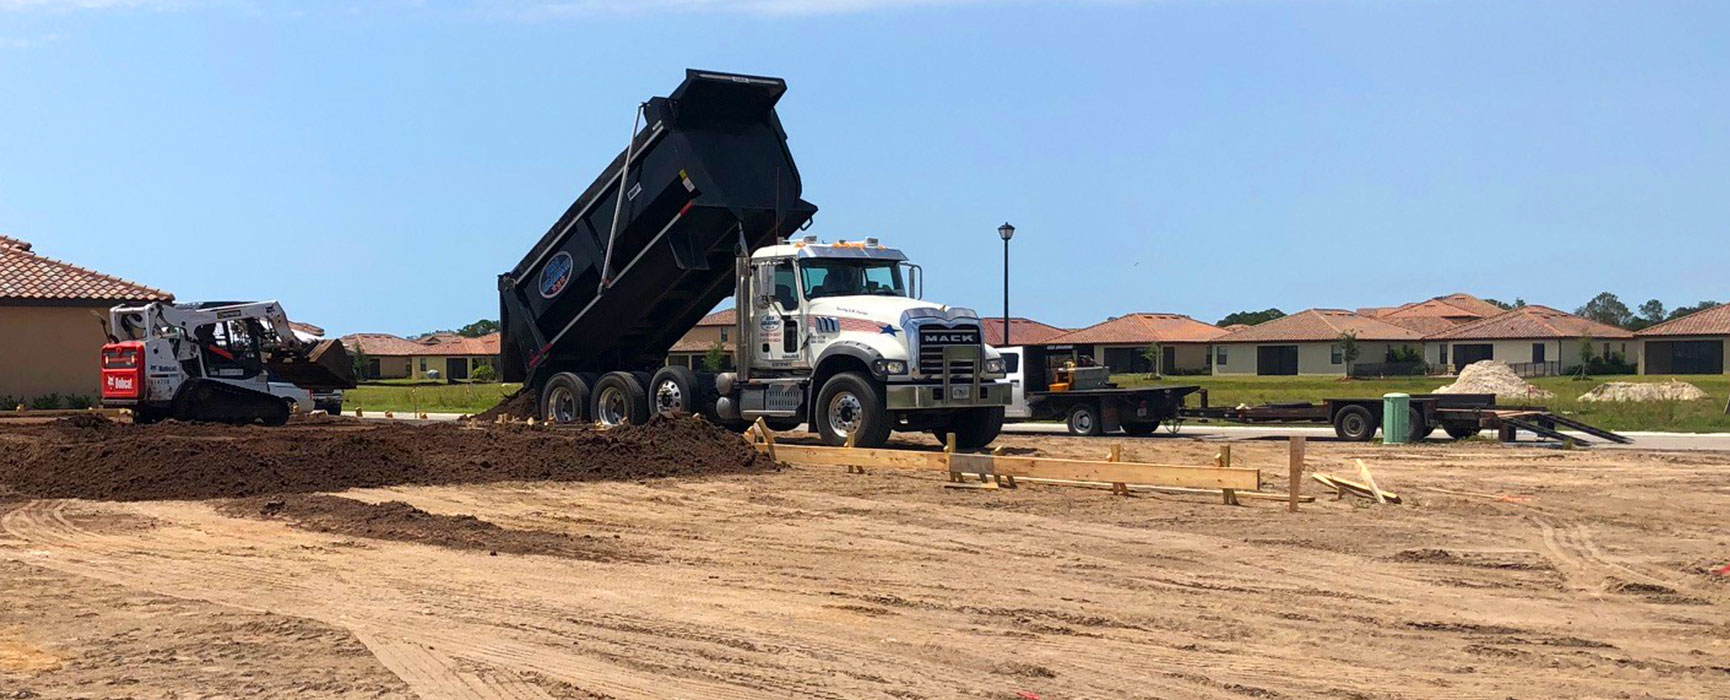 USA Grading, Inc. truck unloading fill dirt and performing site grading in a Southwest Florida residential area